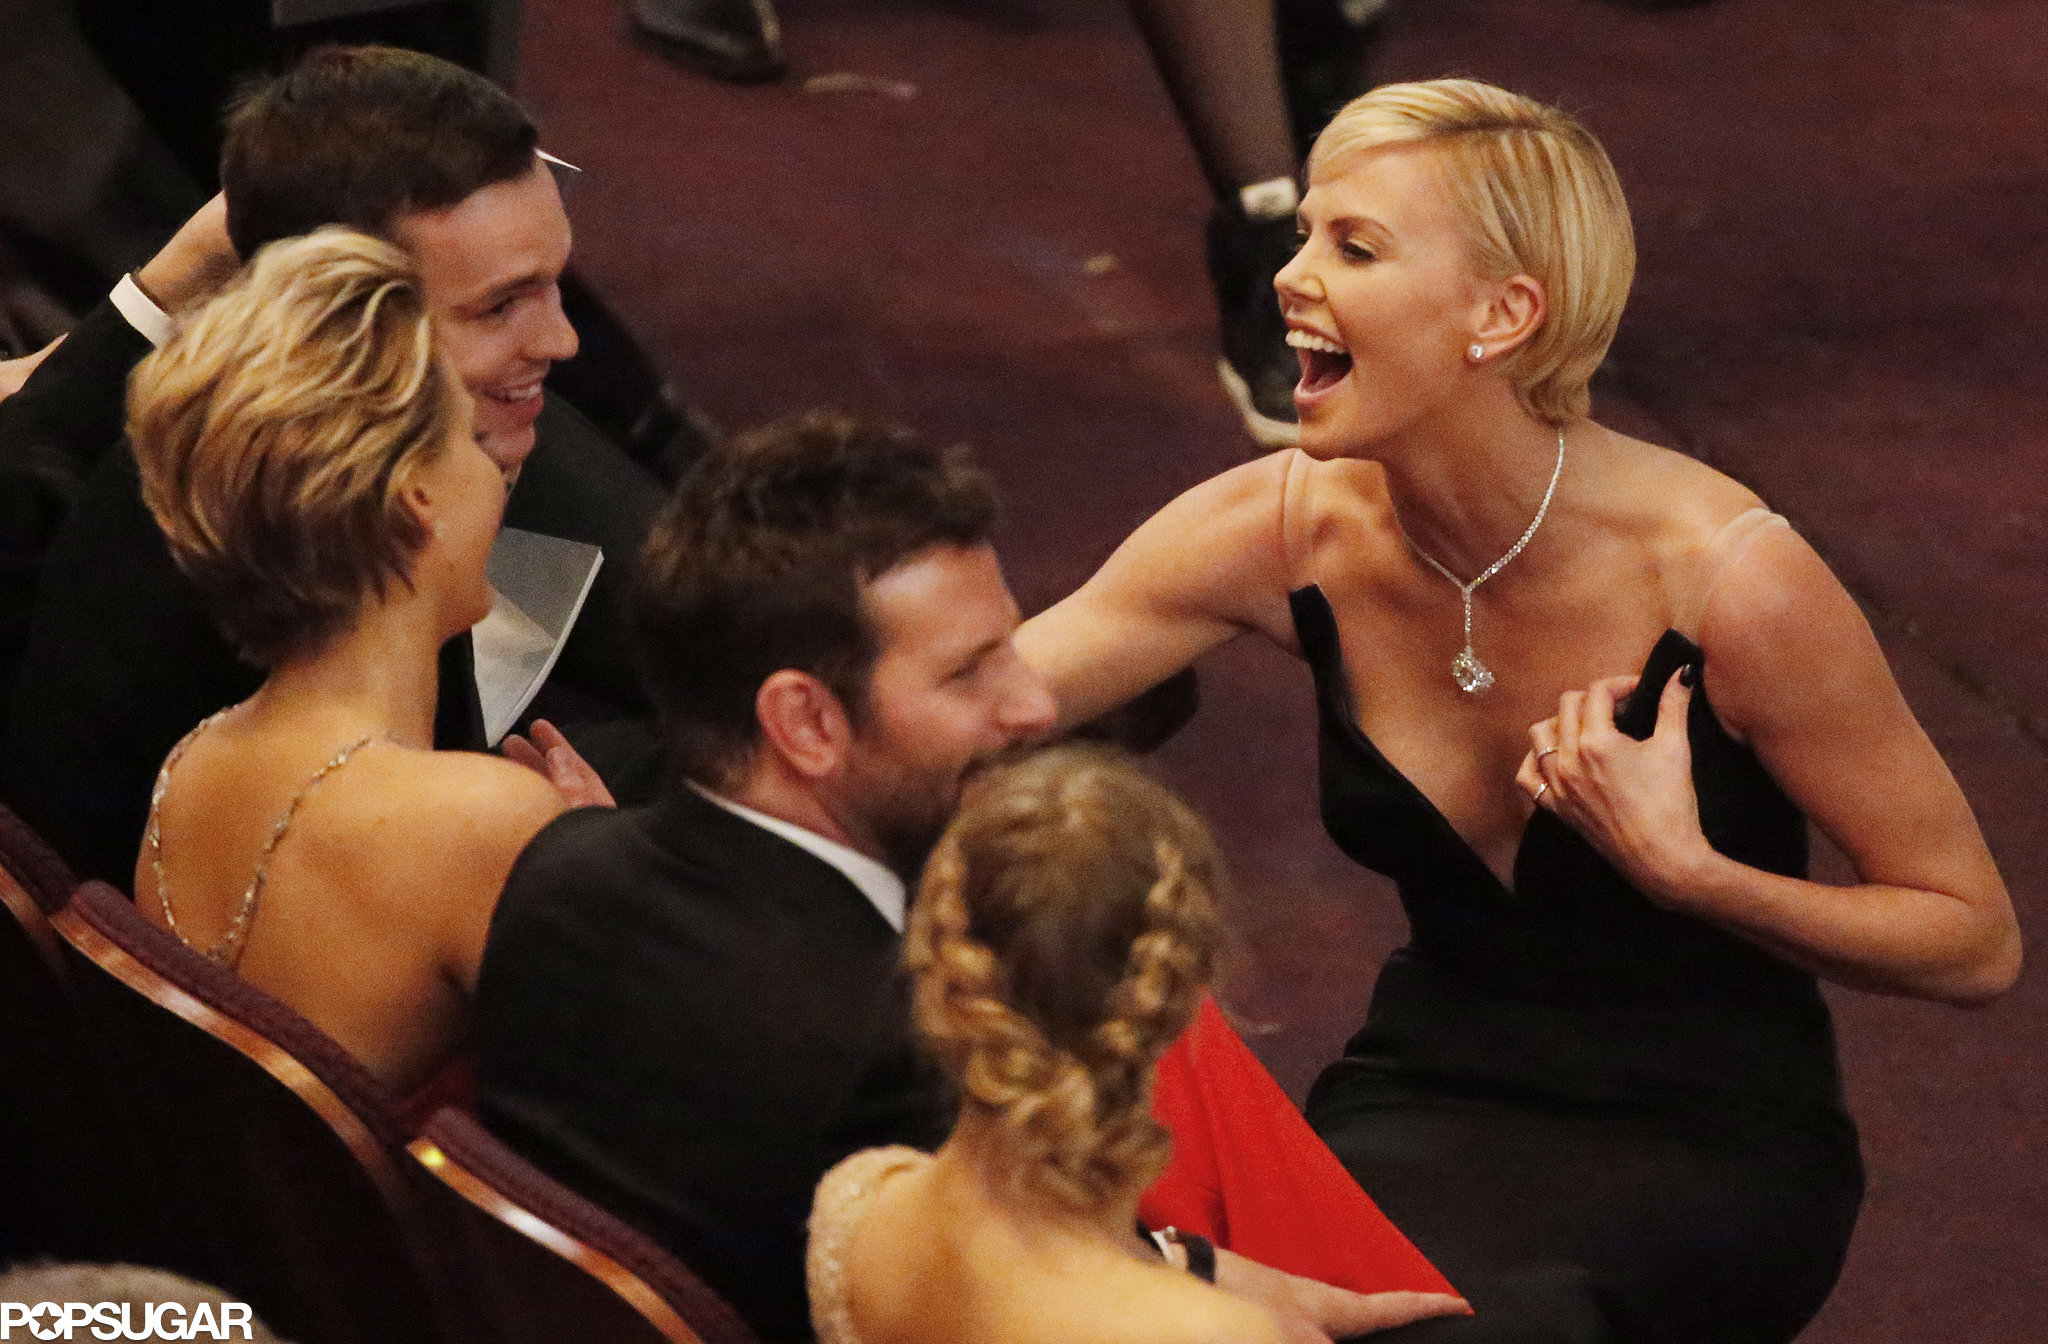 Charlize Theron cracked up while chatting with Jennifer Lawrence and her boyfriend, Nicholas Hoult, in the front row.